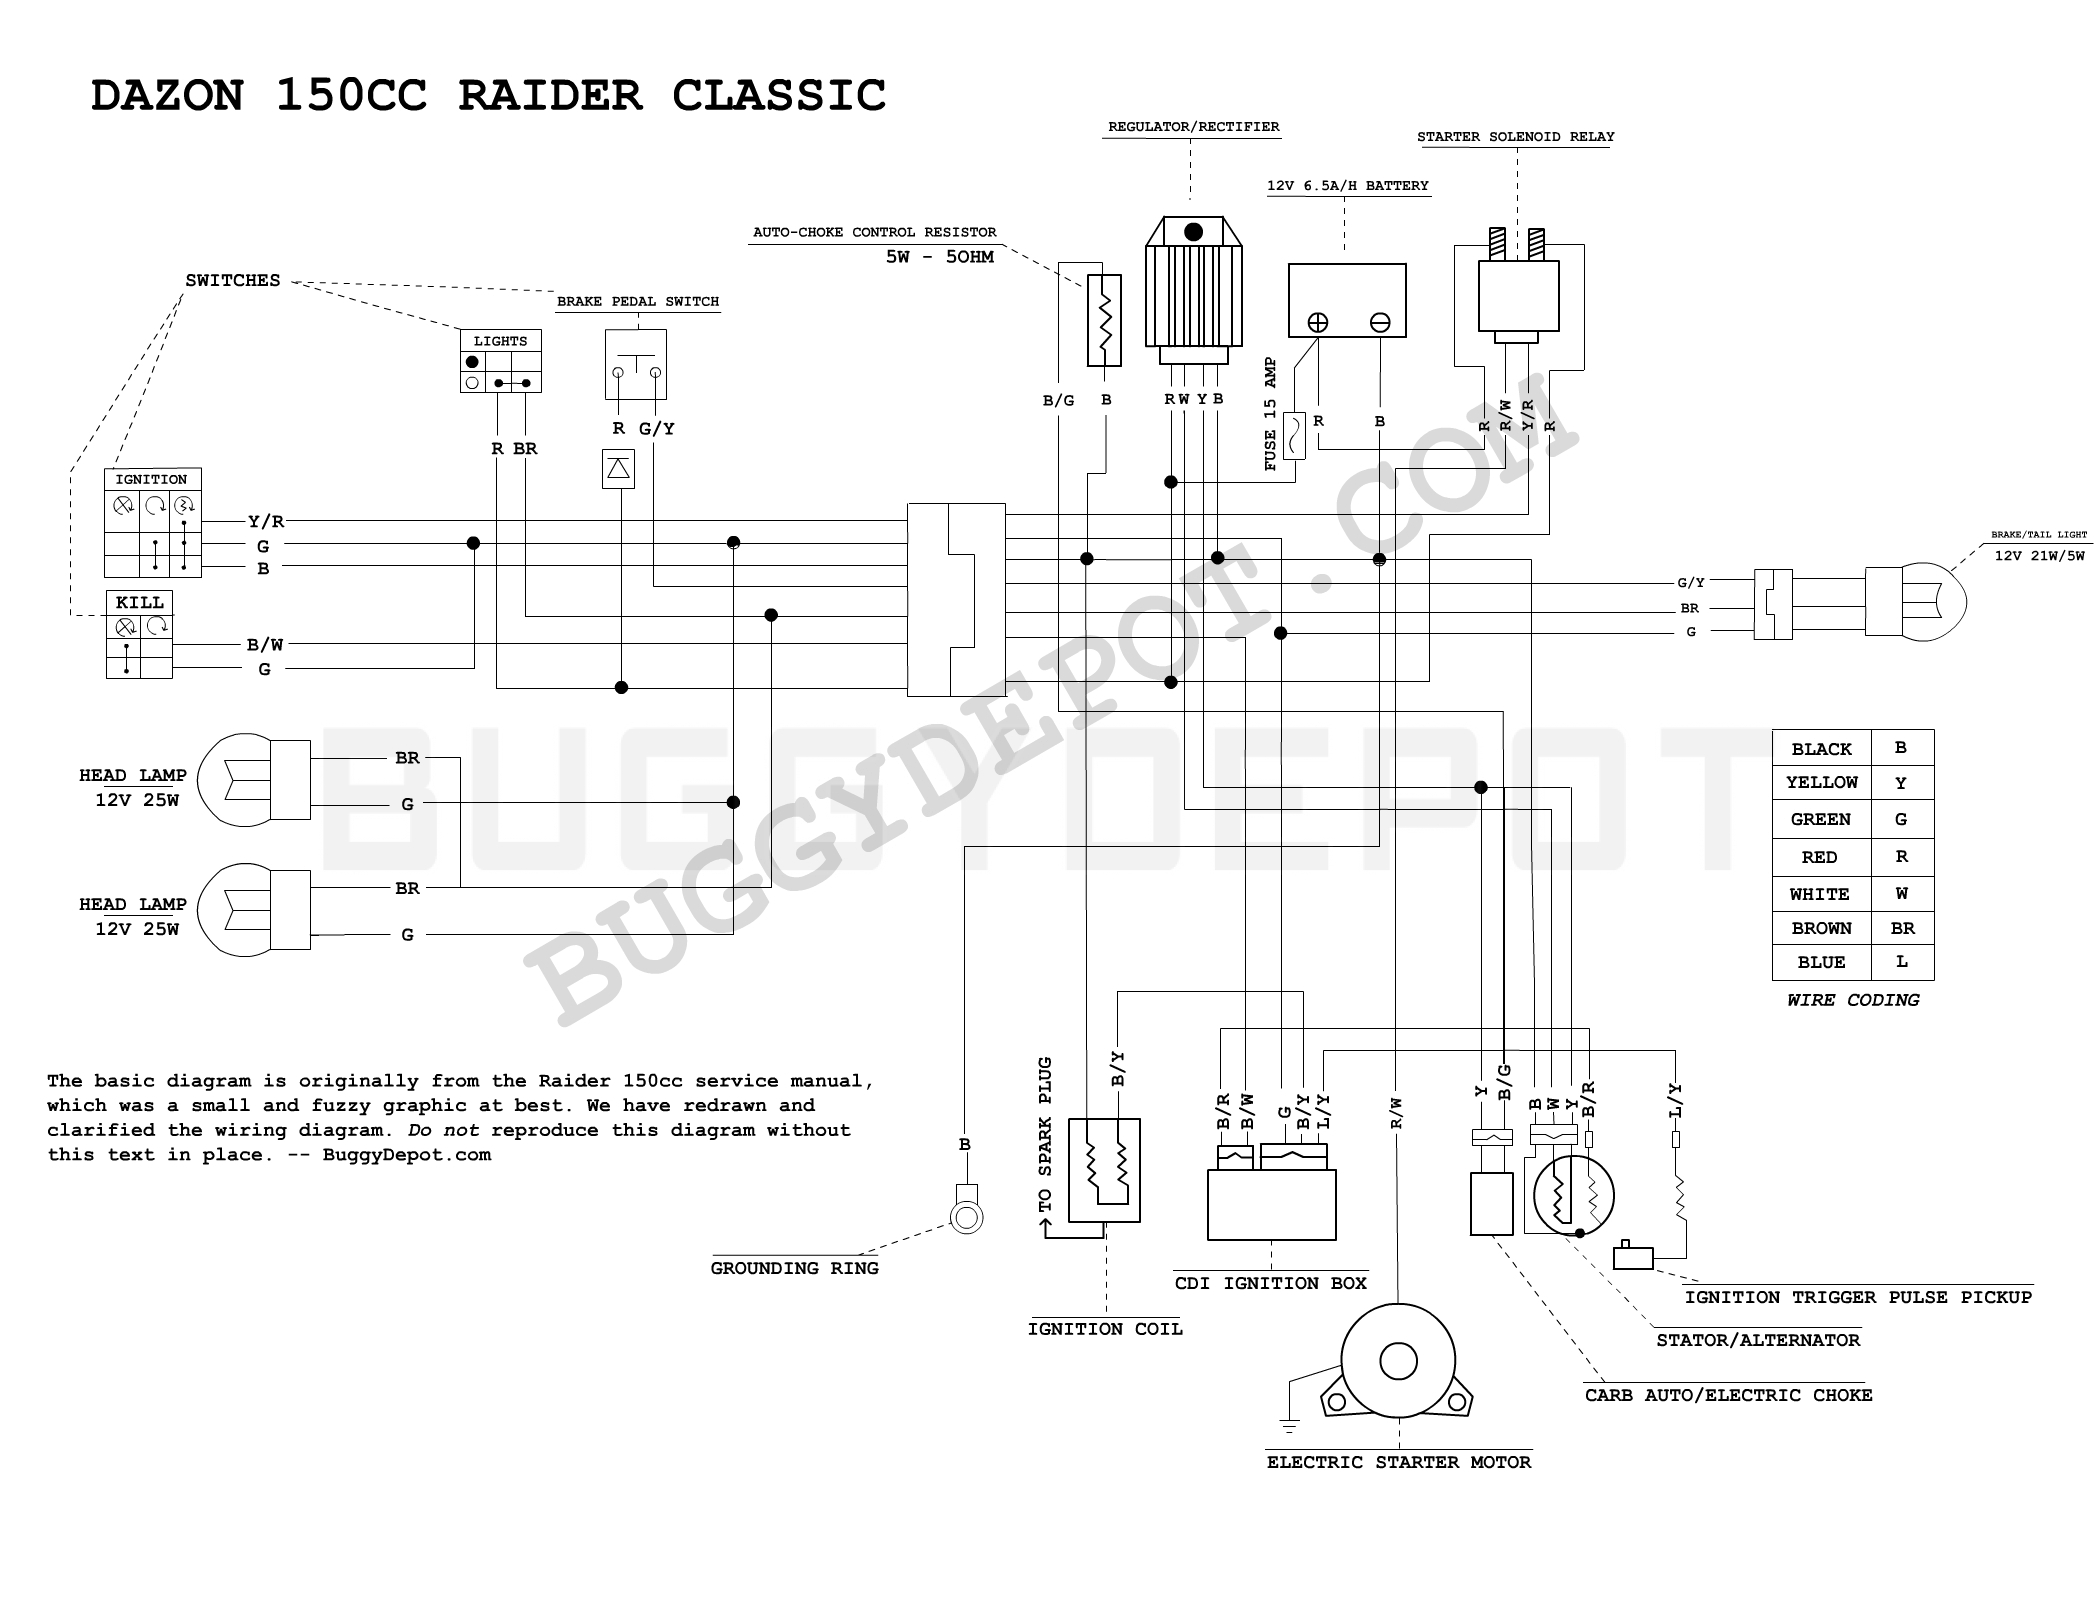 article_33_1278205207 crossfire 150r wiring diagram buggy depot technical center  at bakdesigns.co